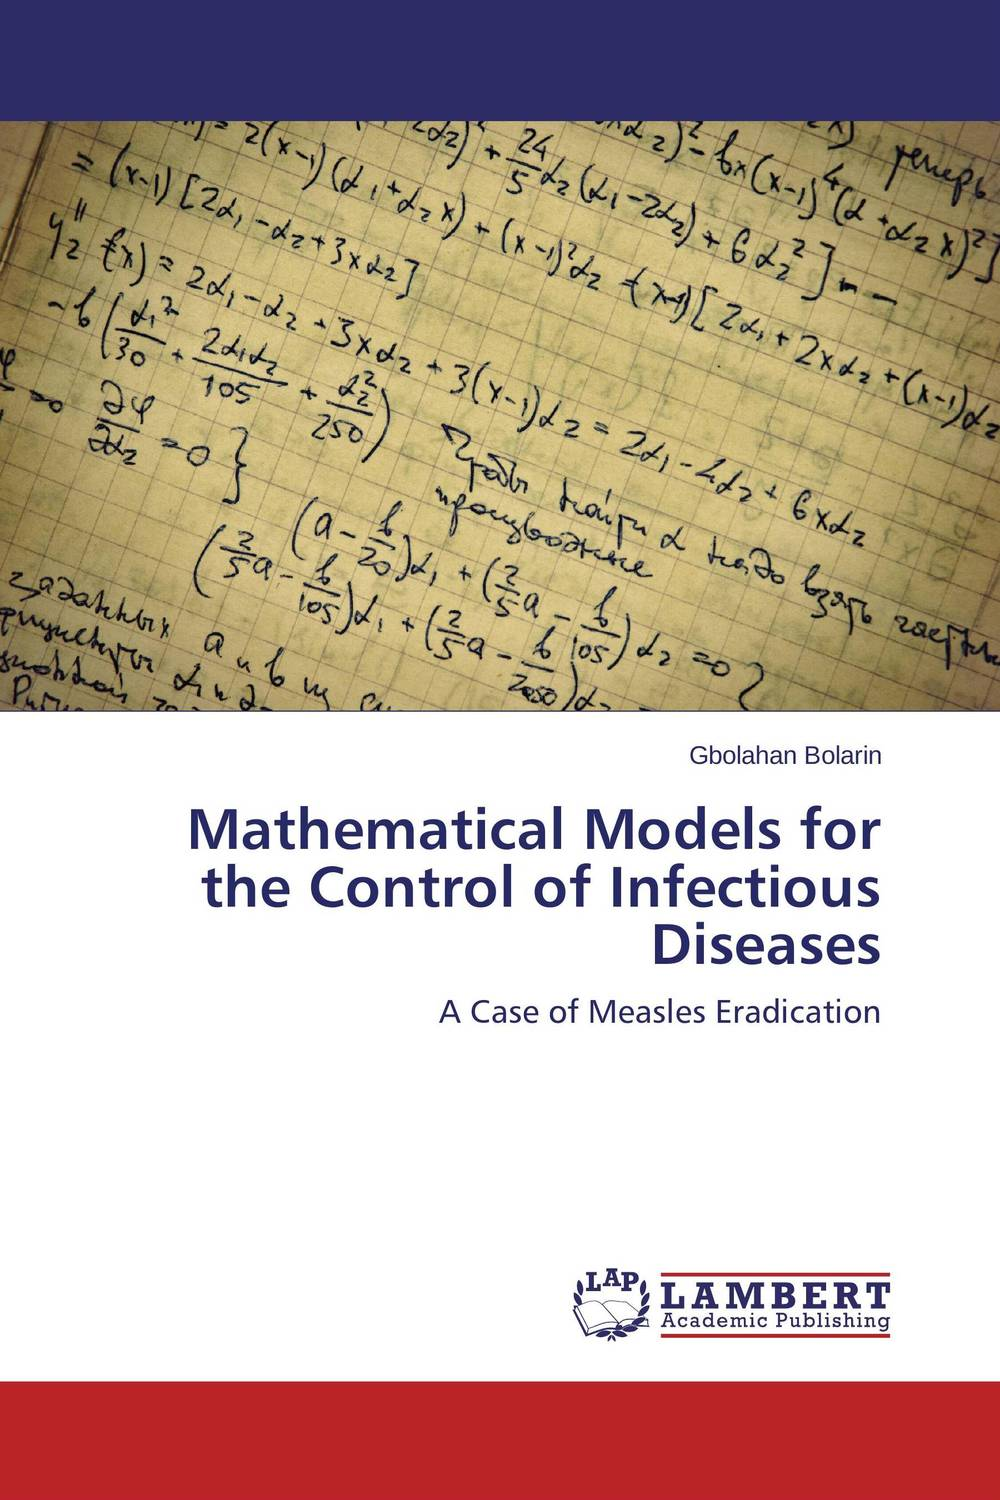 Mathematical Models for the Control of Infectious Diseases differential diagnosis and diagnostic algorithm of infectious diseases in children the practical gu